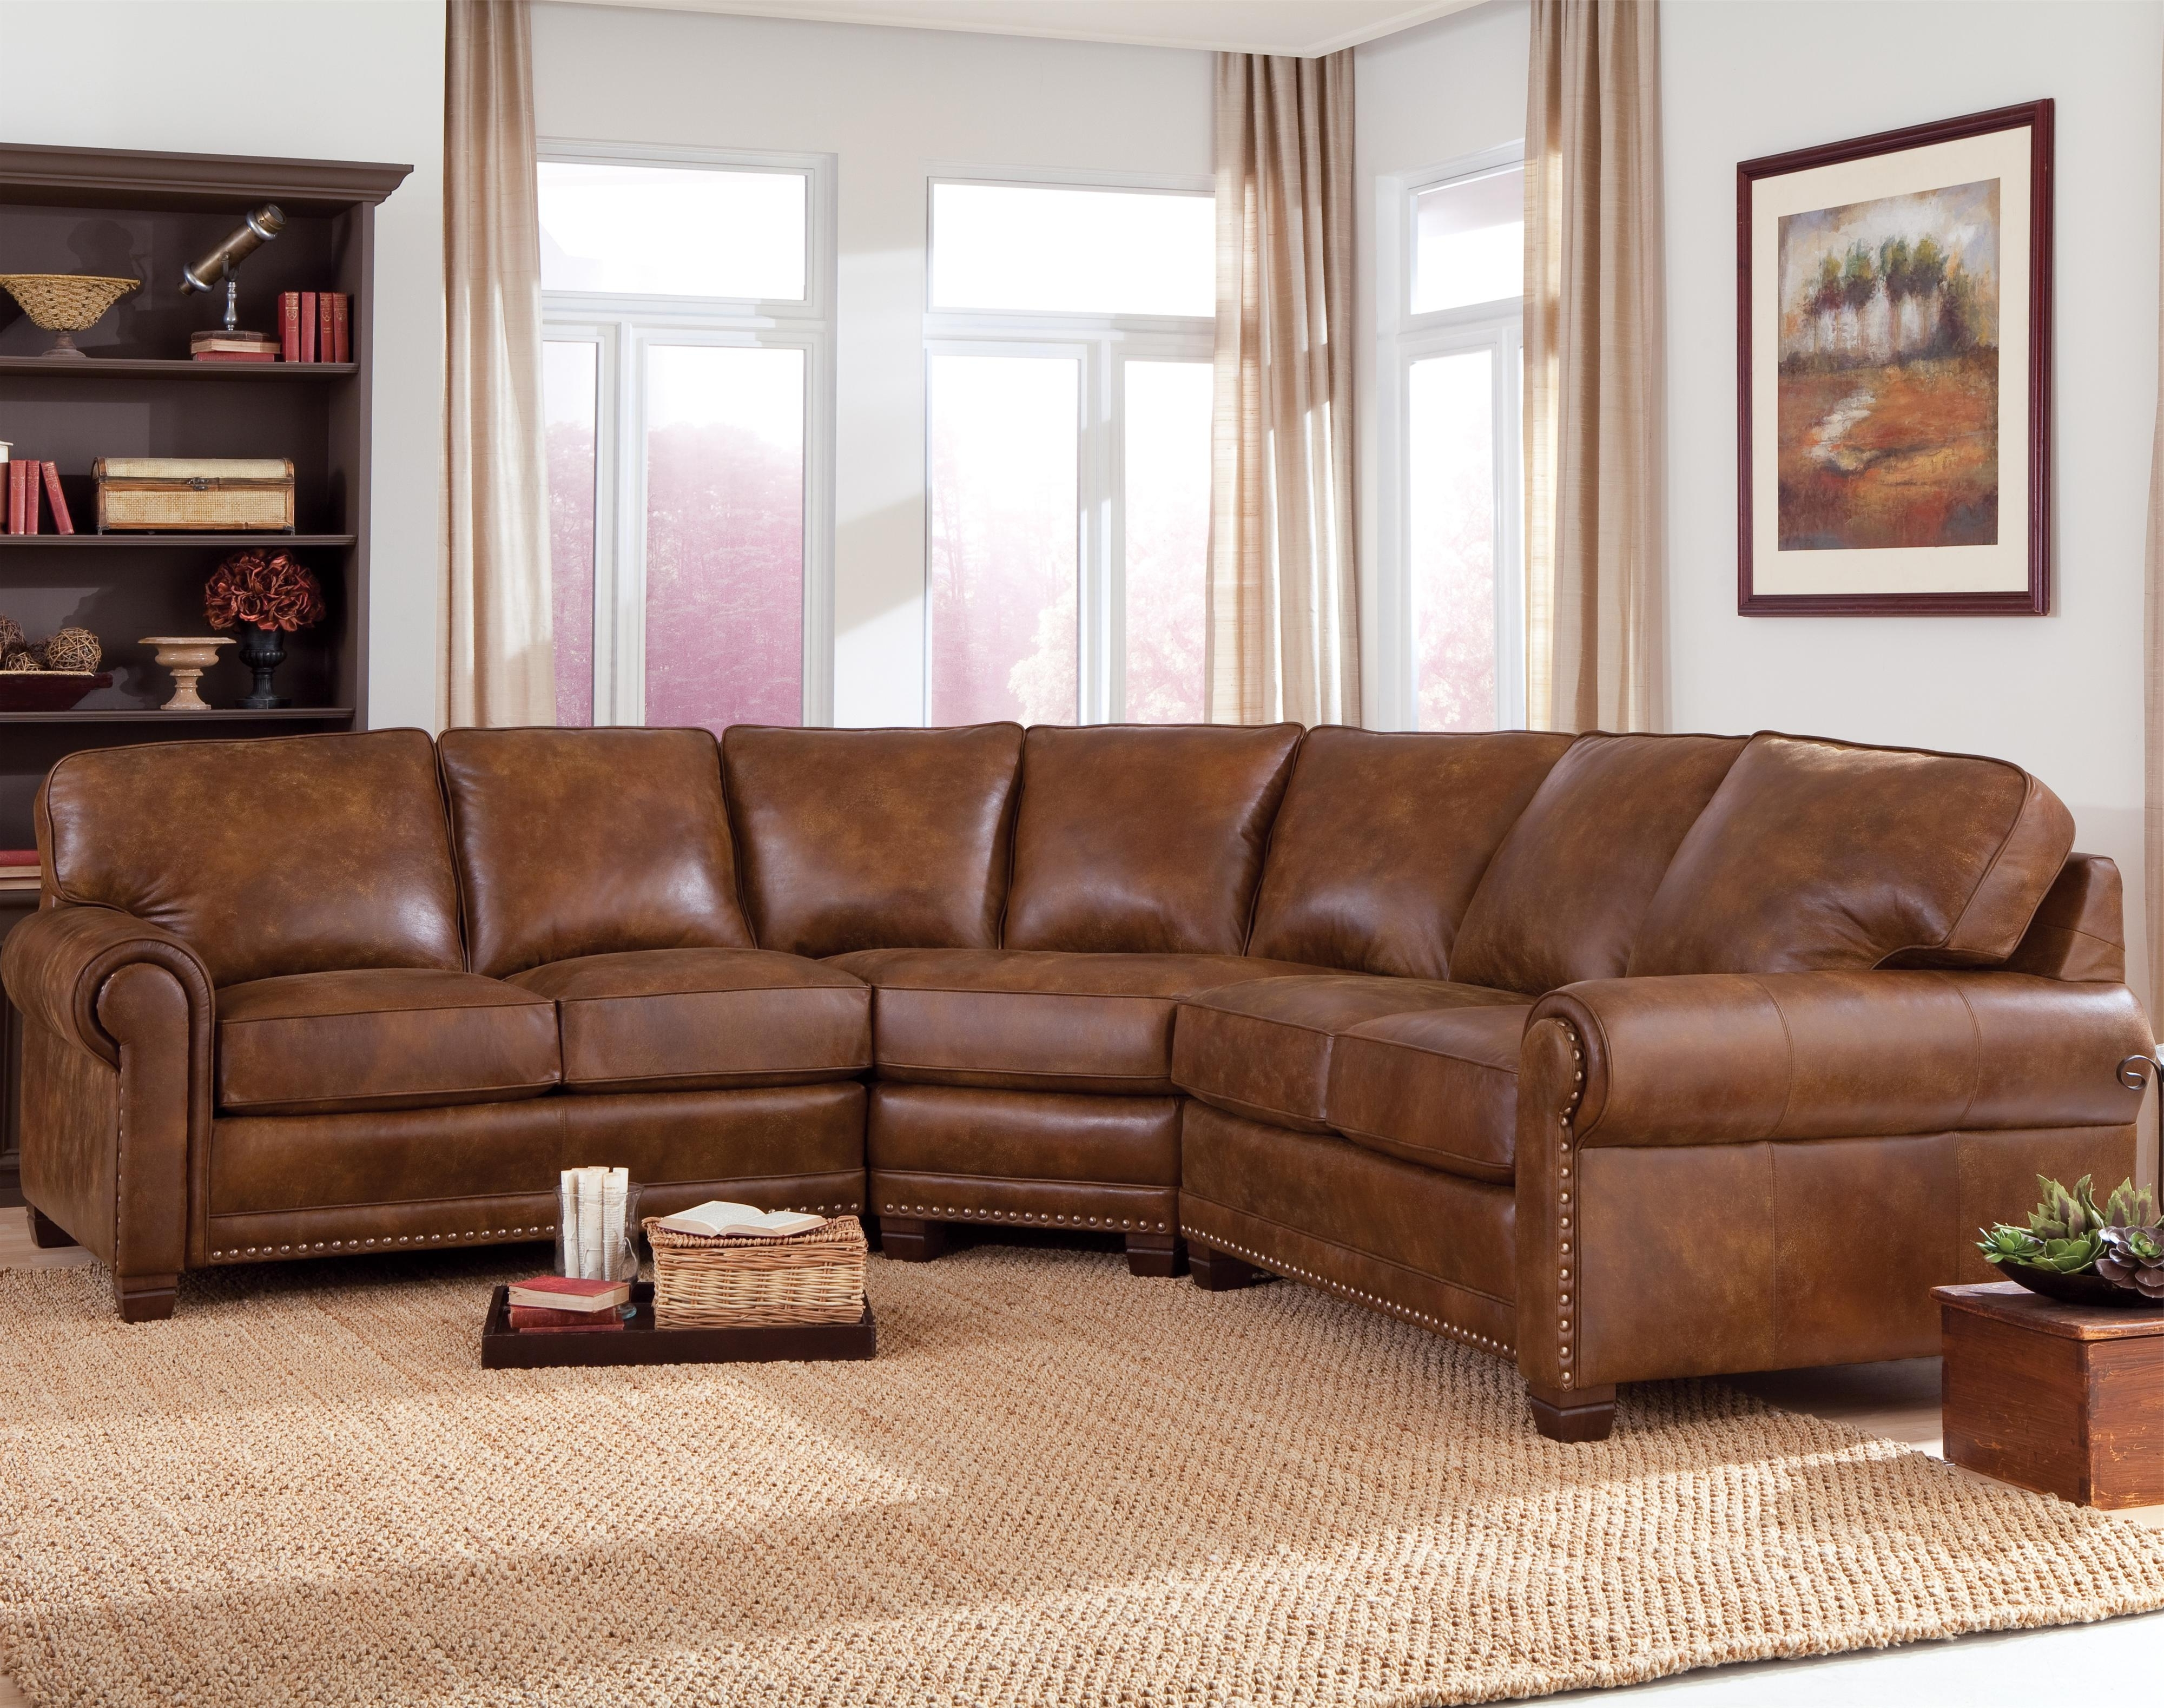 Traditional 3 Piece Sectional Sofa With Nailhead Trimsmith Intended For Popular Sectional Sofas With Nailhead Trim (View 17 of 20)